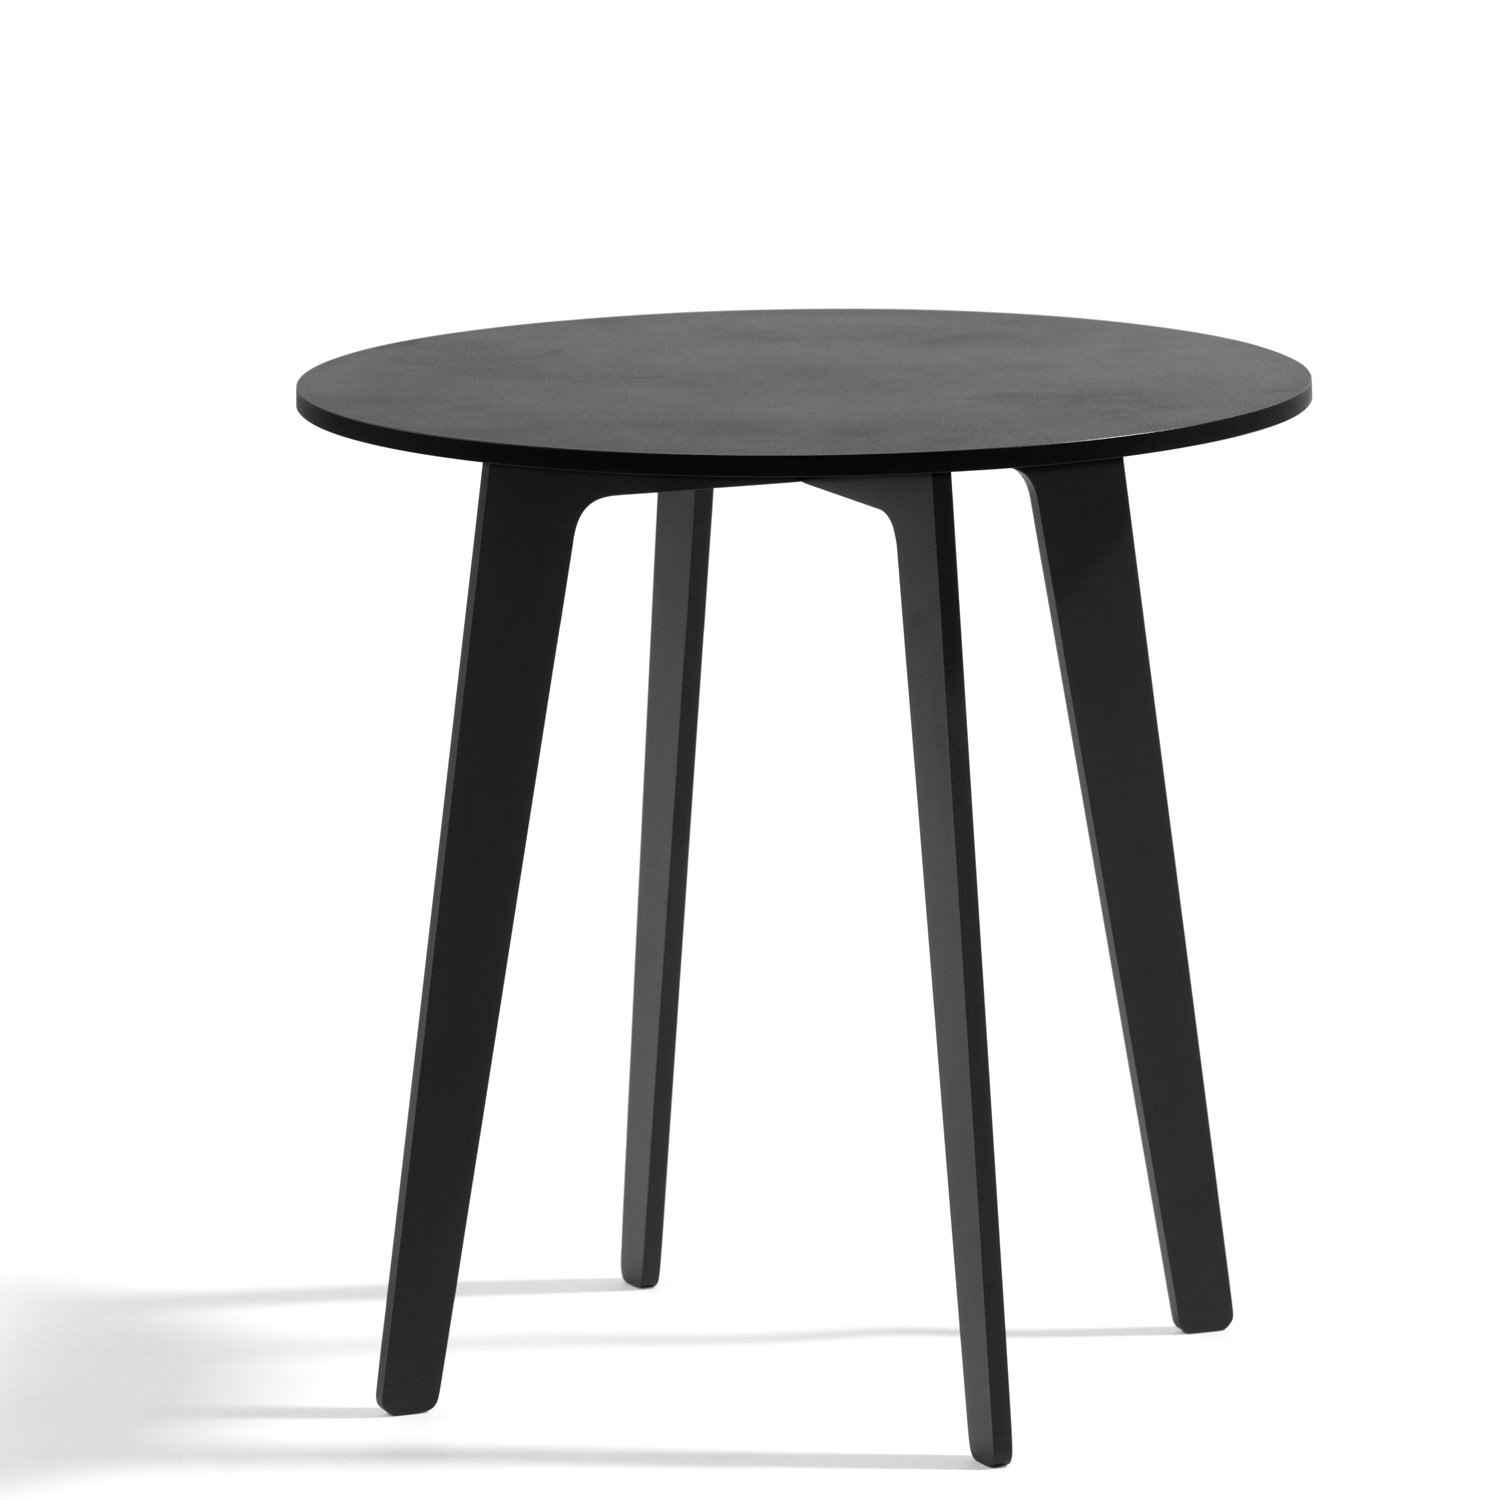 Mika Round Table by Bla Station